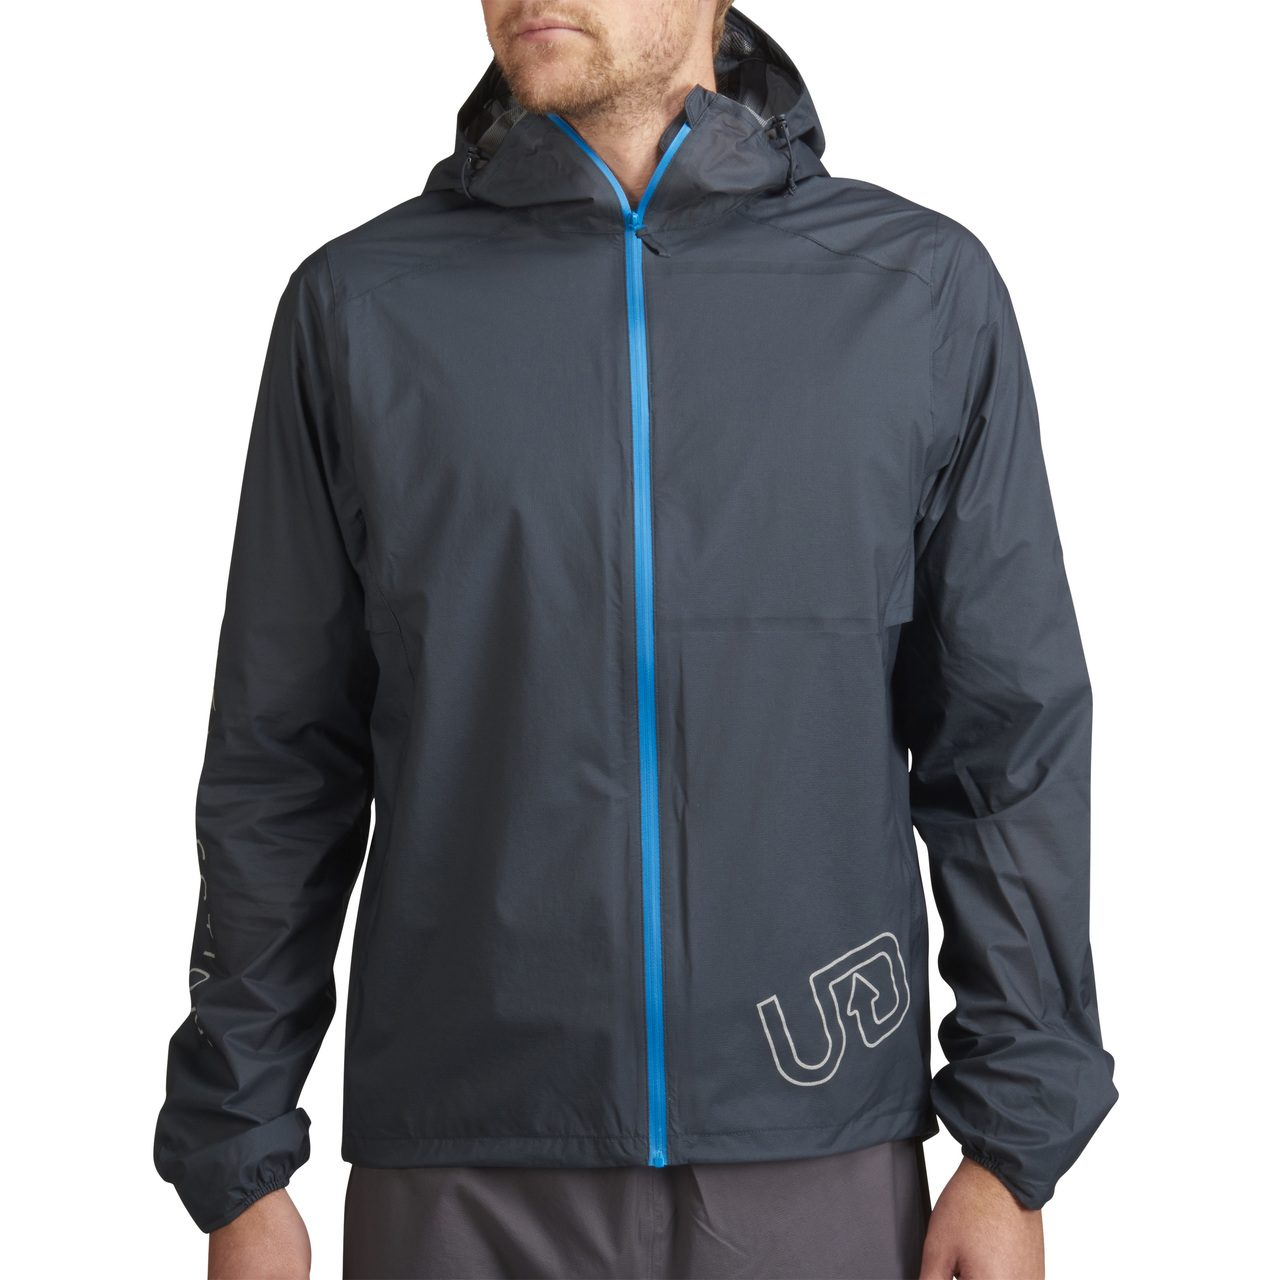 adidas ultra jacket review